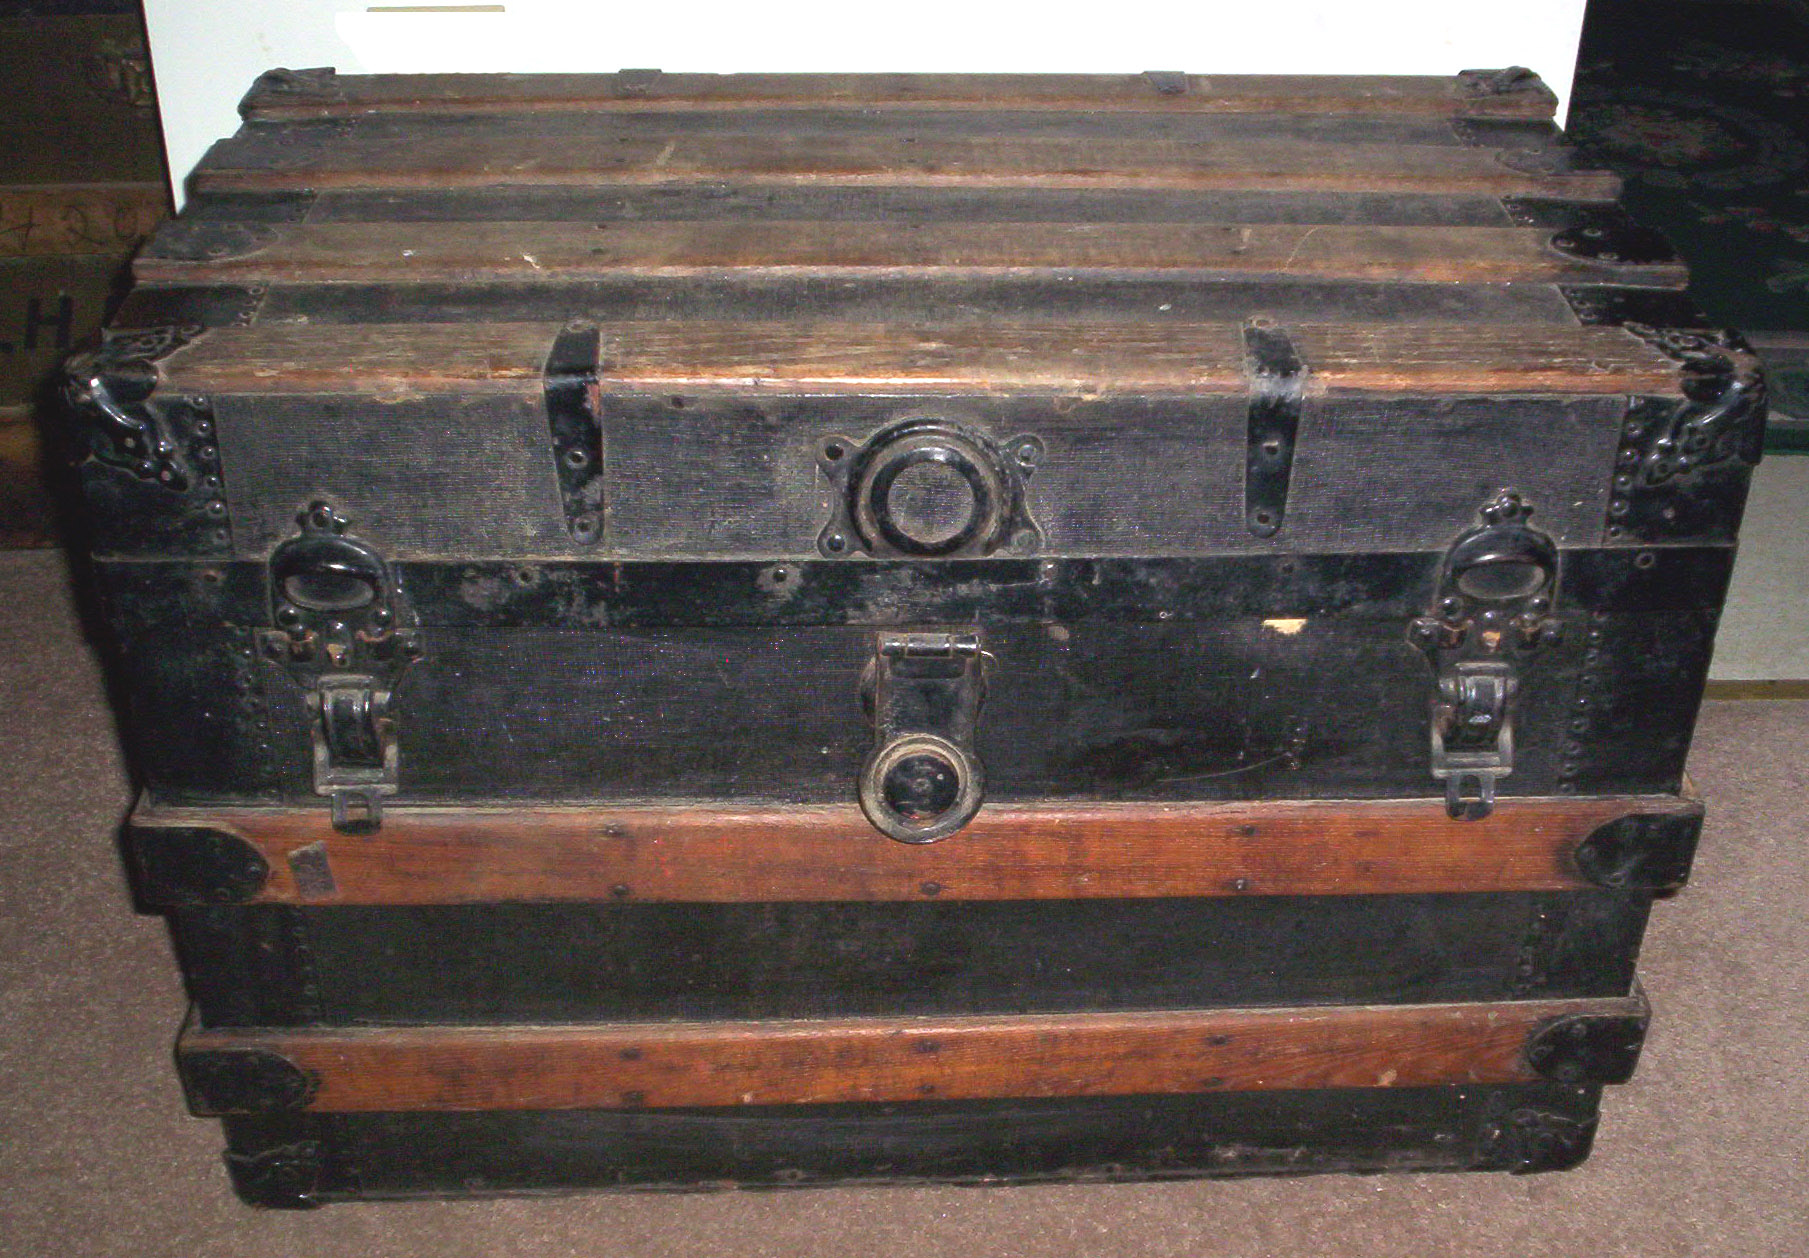 This is a Post-CW Trunk based on the lock. Just an example of a flat ...